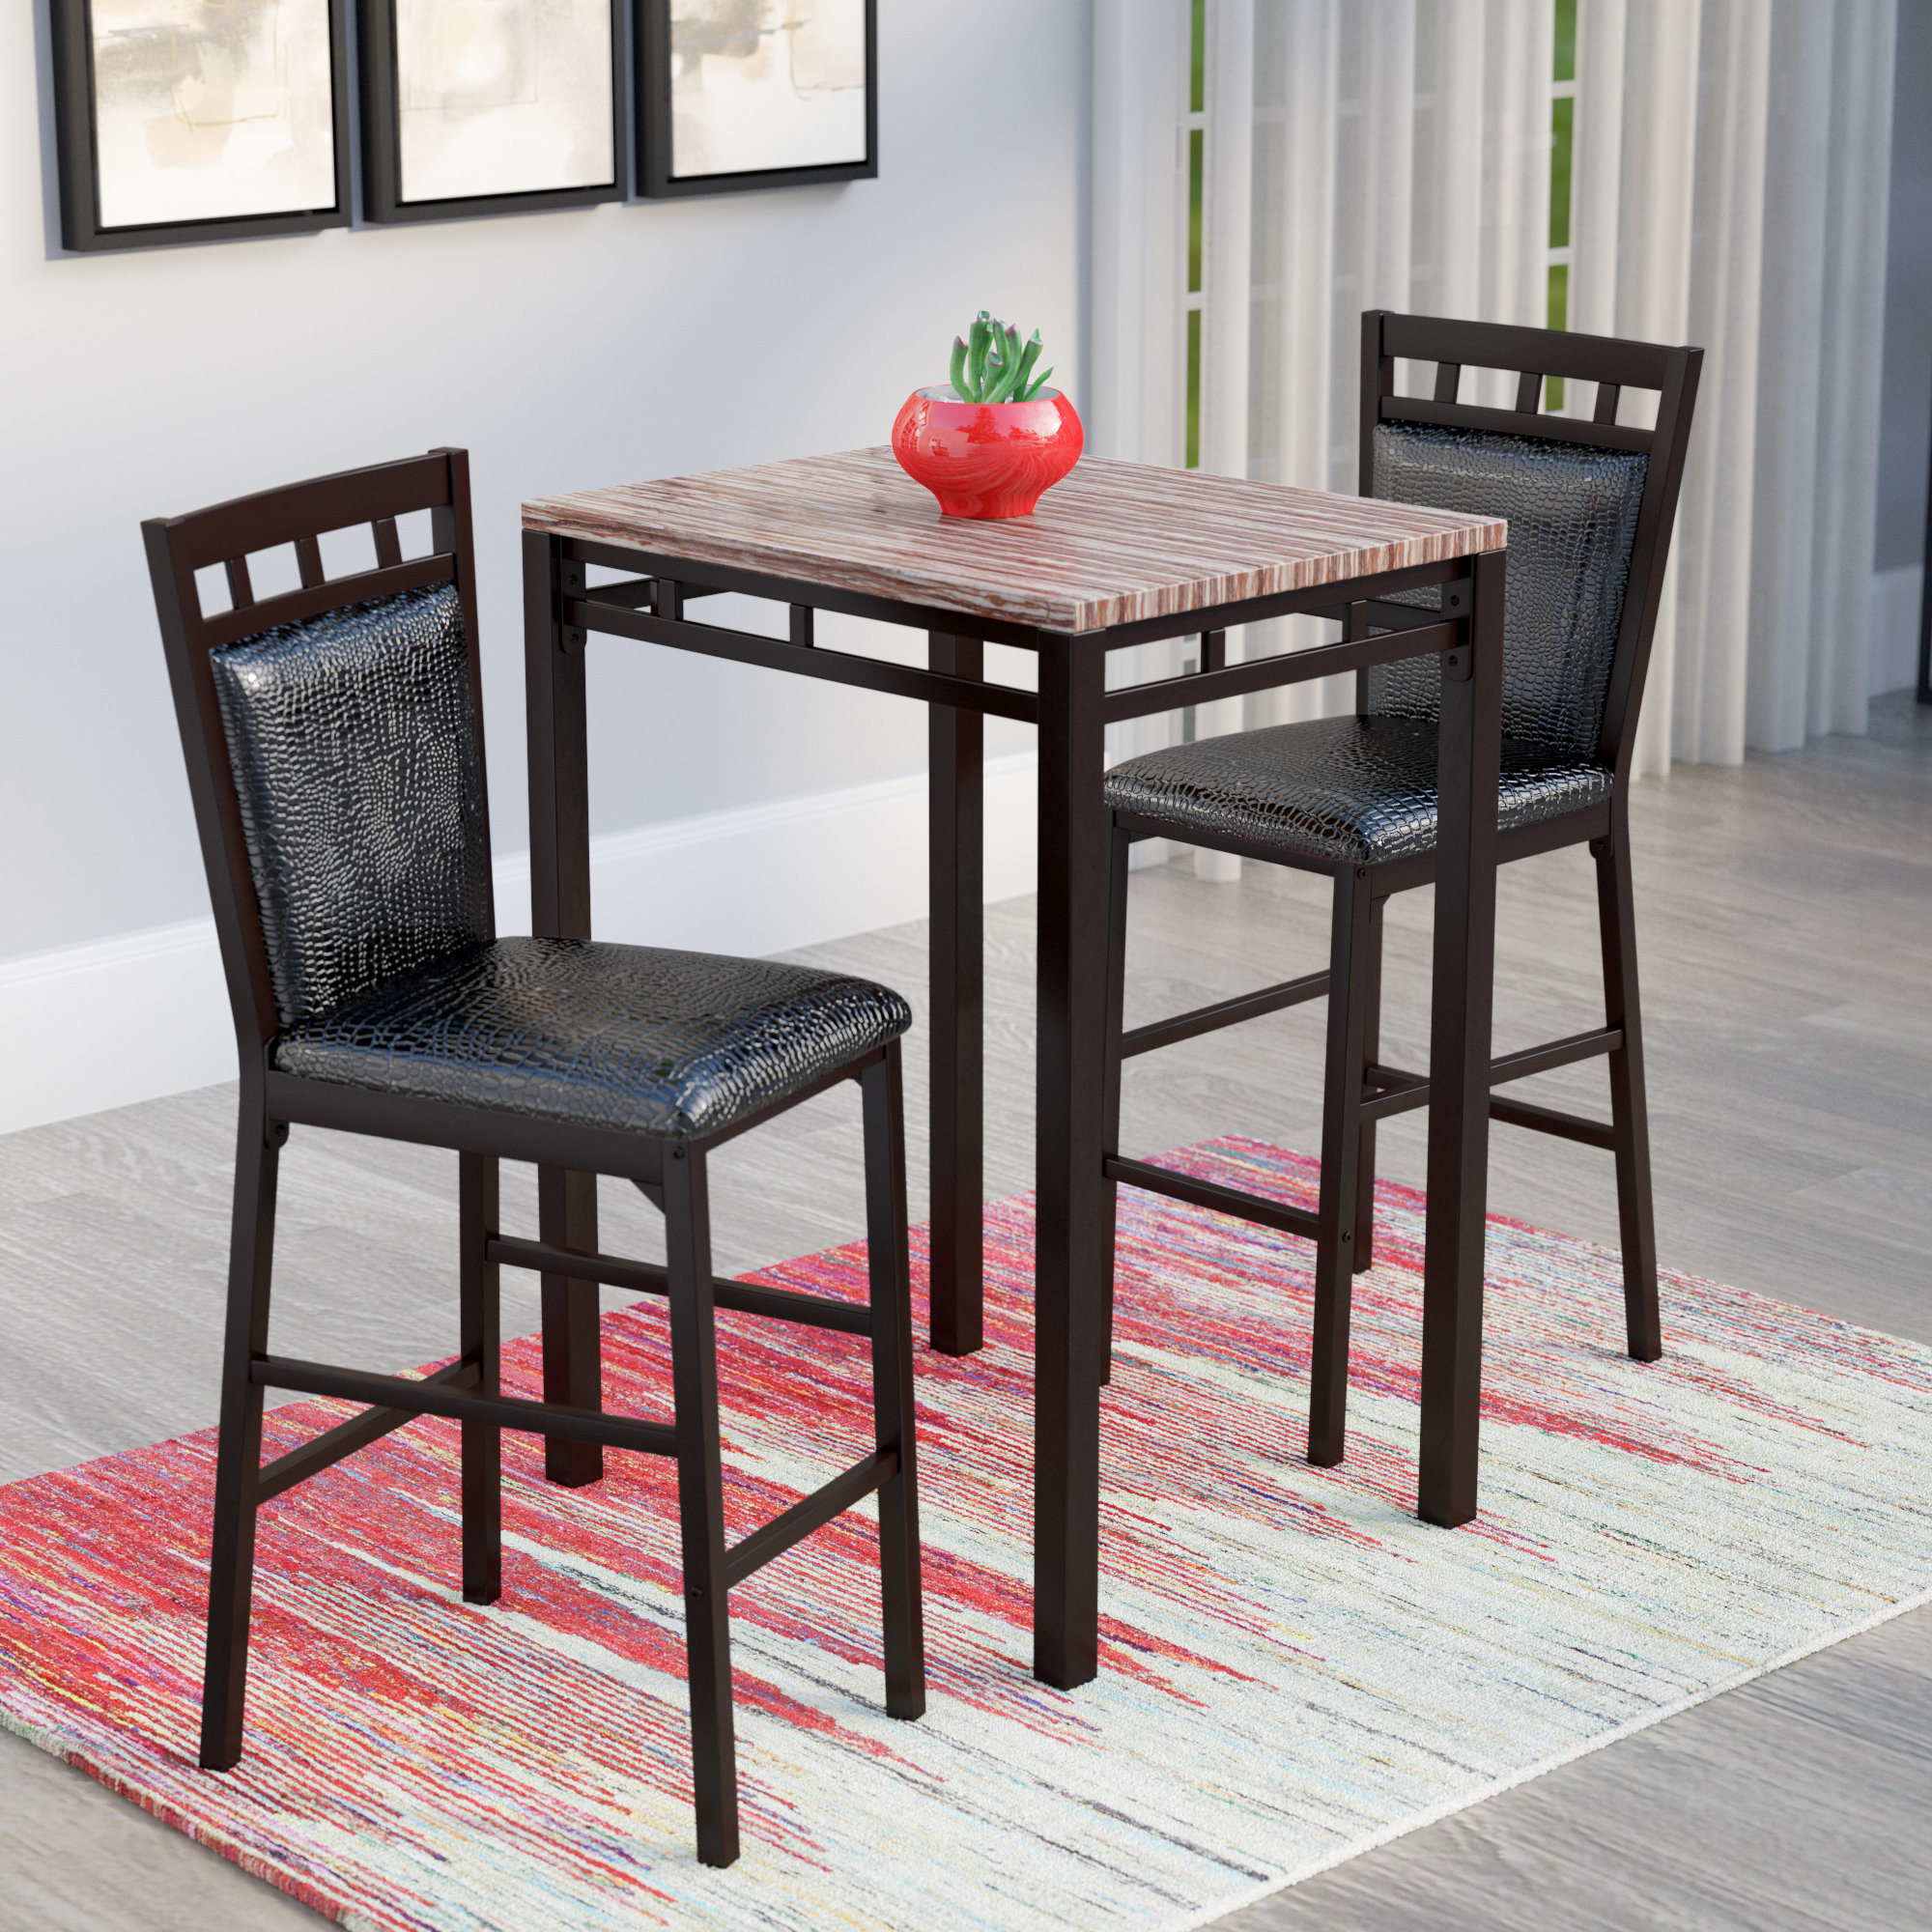 Widely Used Miskell 3 Piece Dining Sets Intended For Eric 3 Piece Pub Table Set (View 6 of 20)